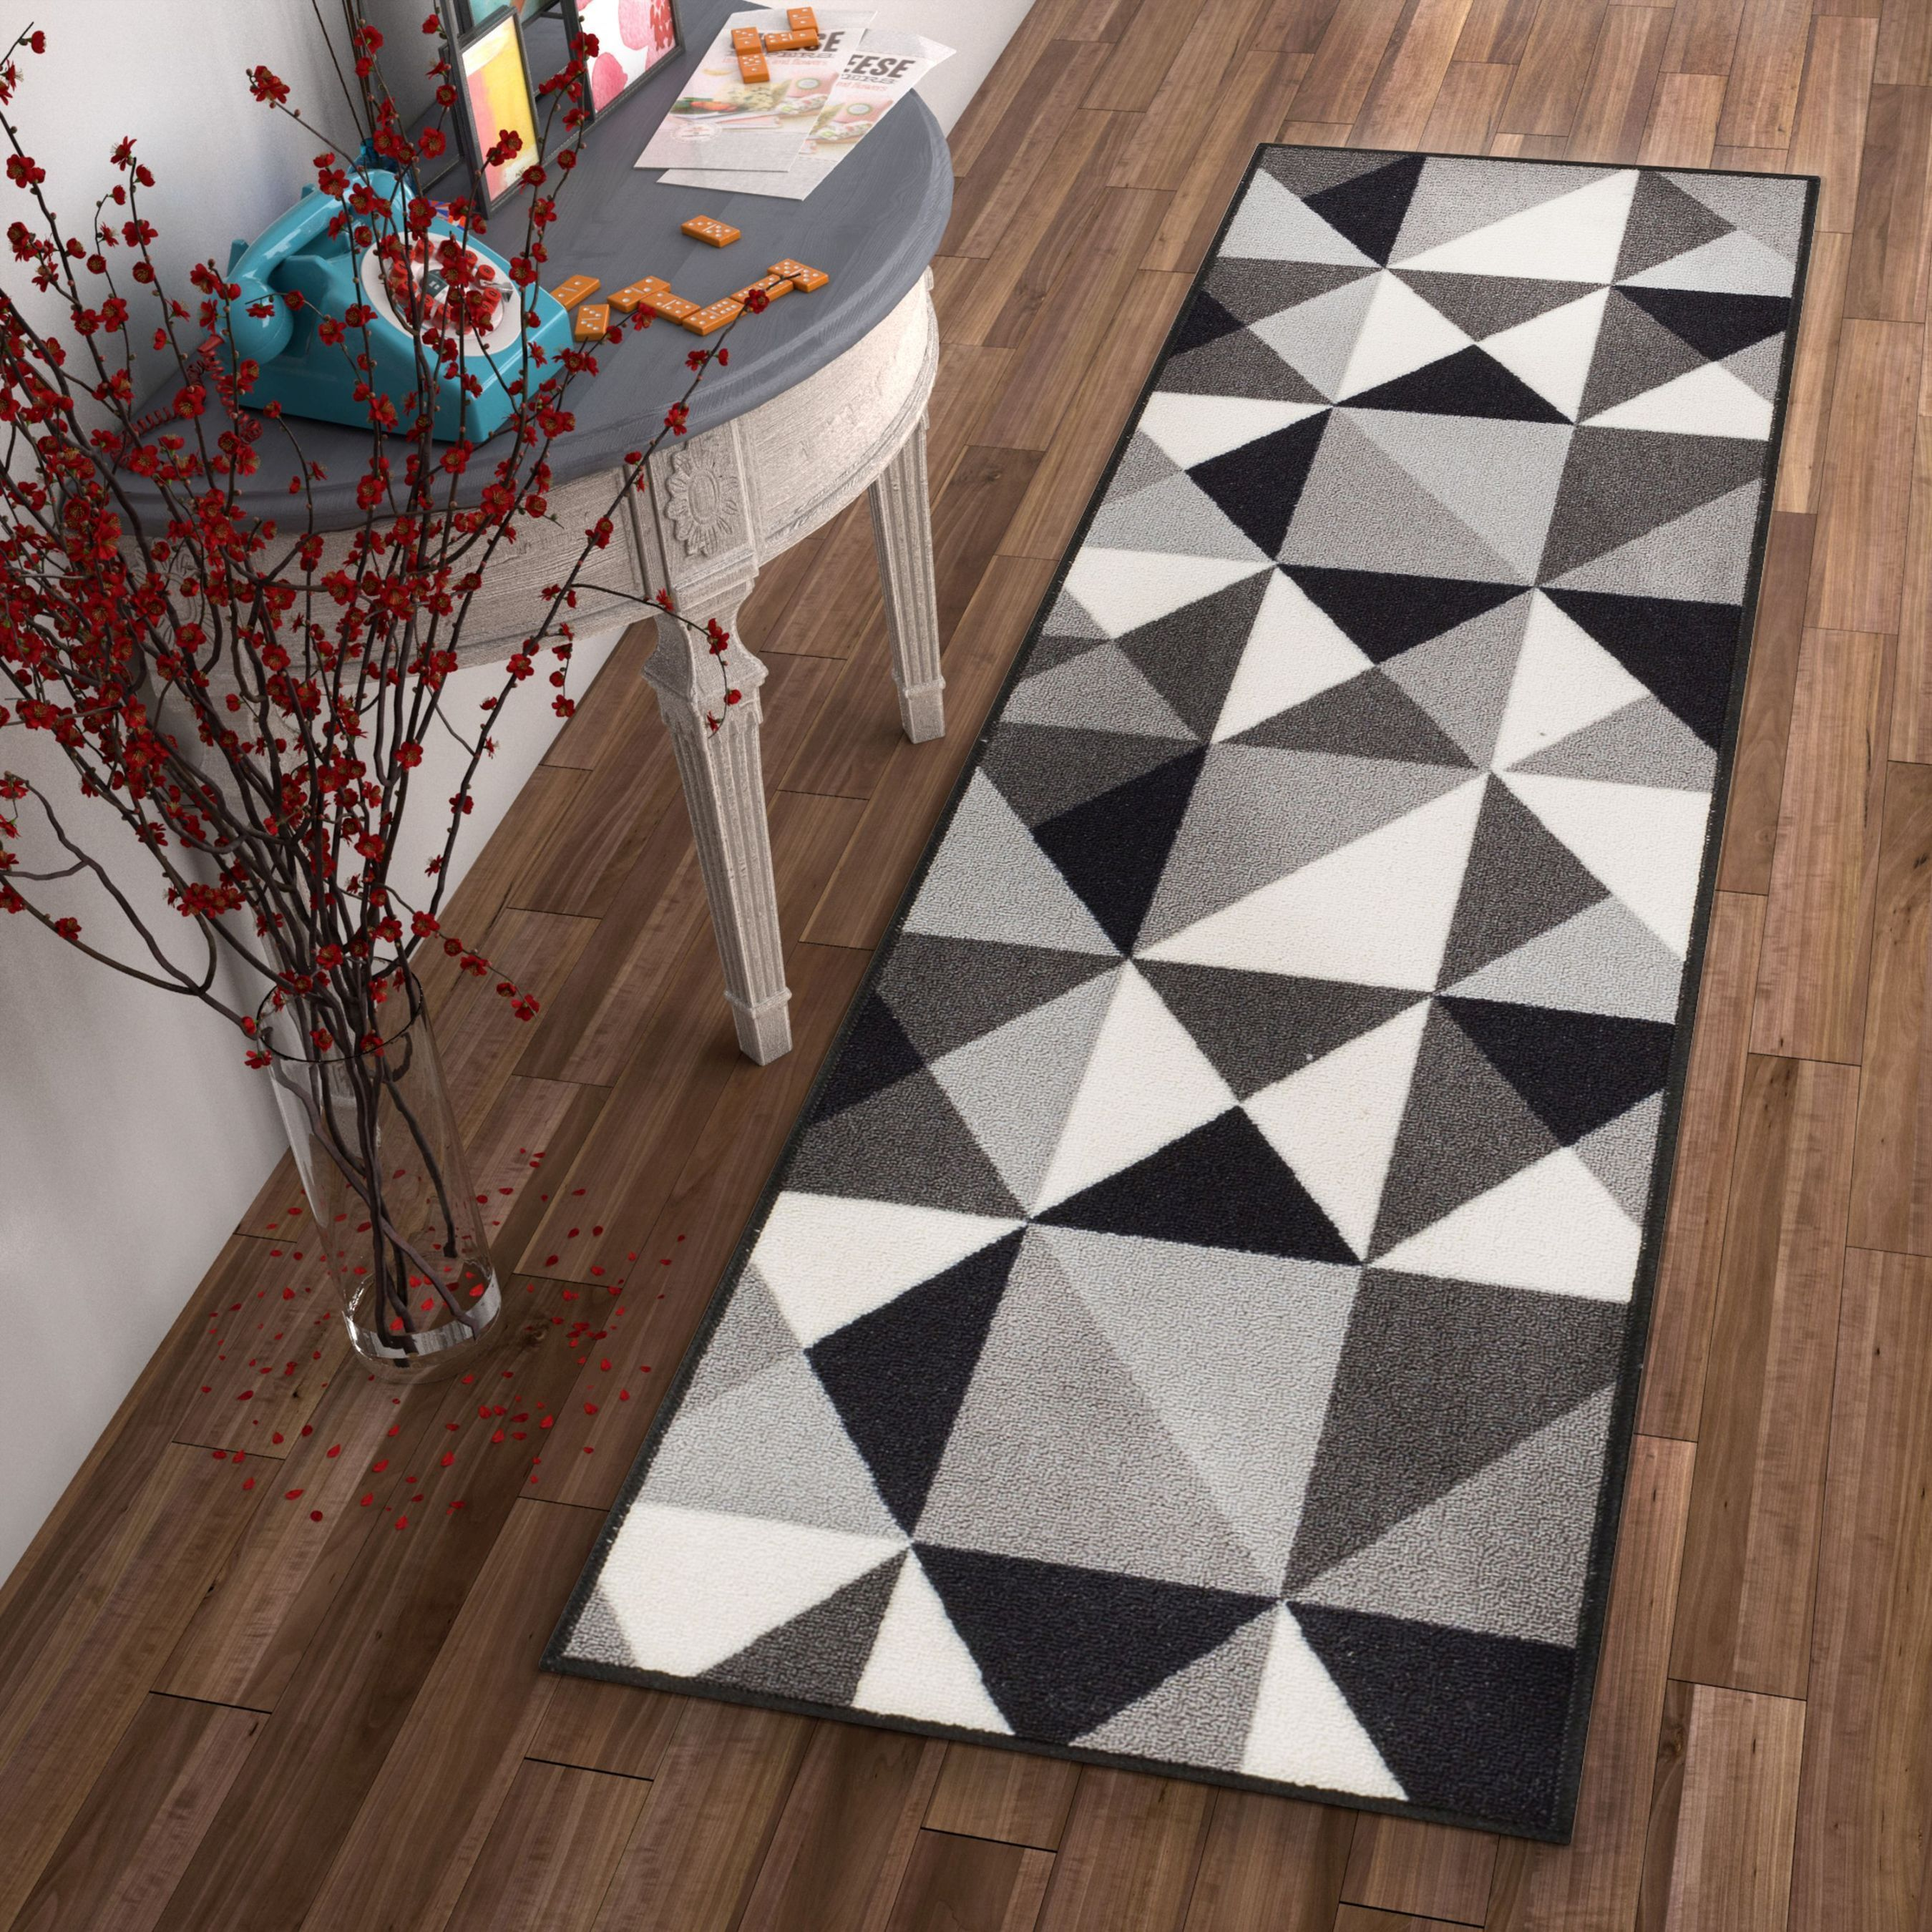 Lex Casual Geo Grey Black White Geometric Modern Non Slip Rubber